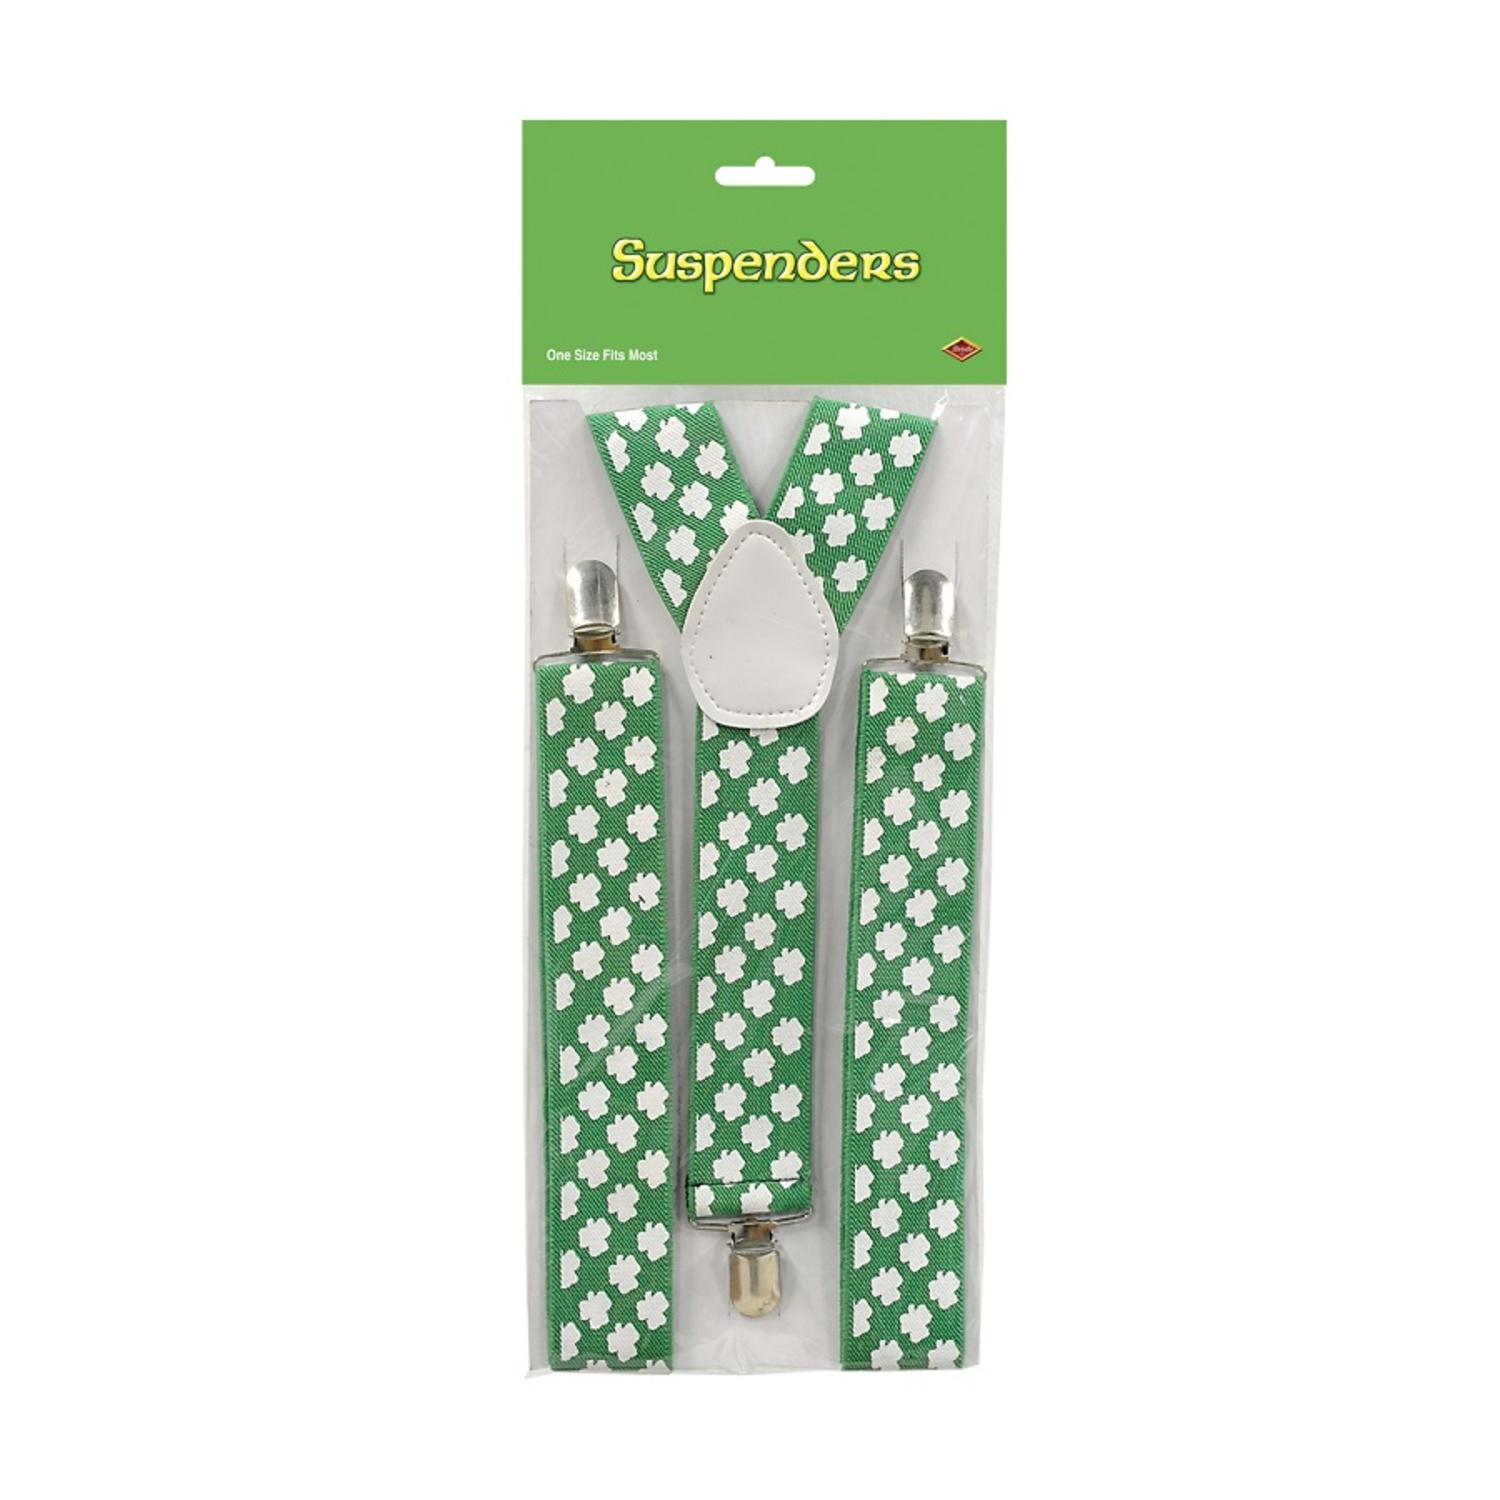 Club Pack of 12 Adjustable St.Patrick's Day Shamrock Suspender Costume Accessories